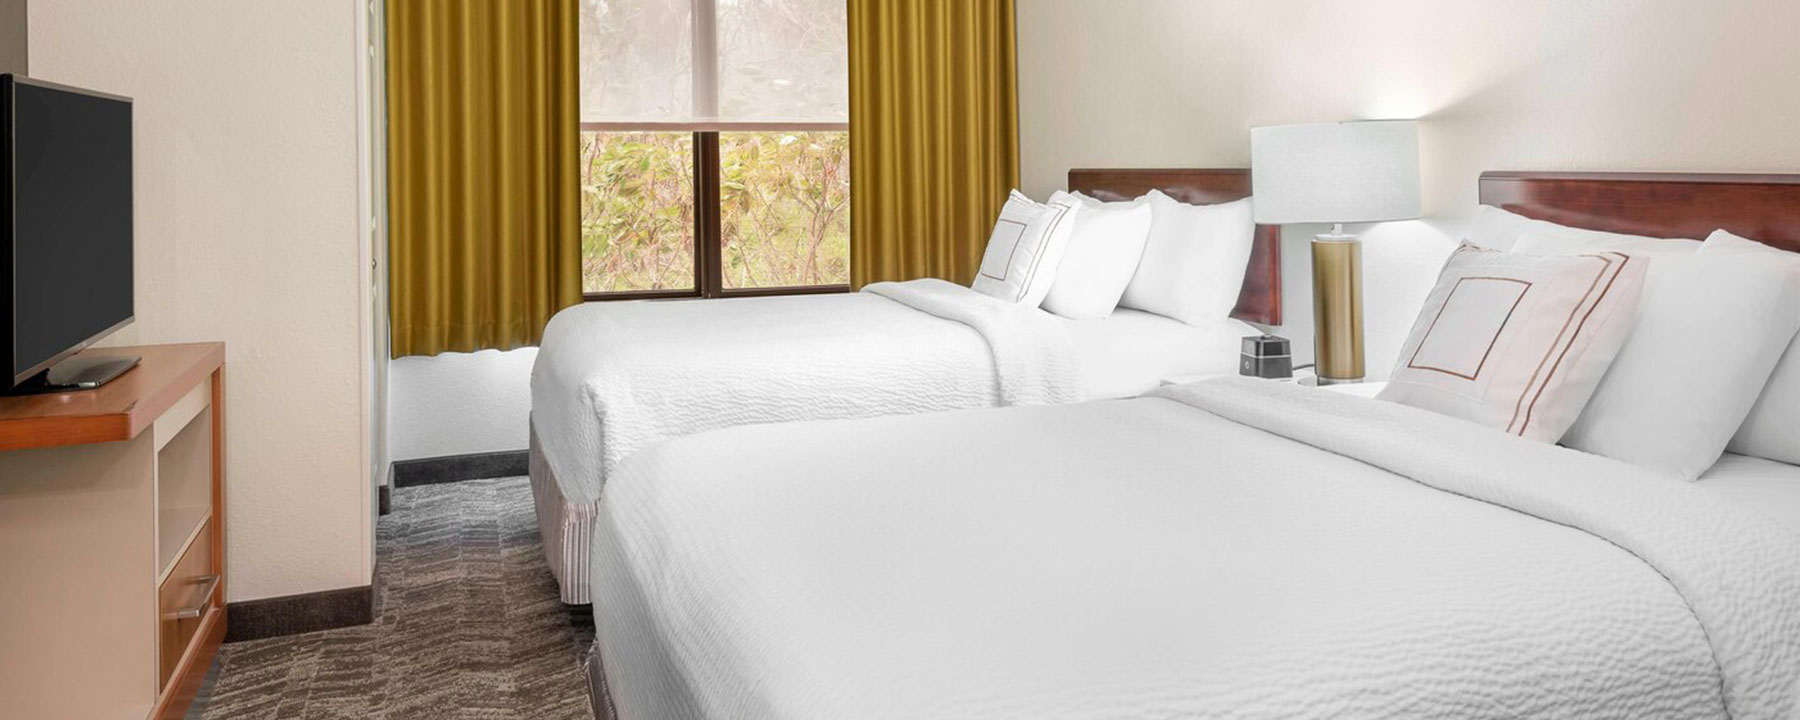 Springhill Suites Marriot by FIRC Group Asheville